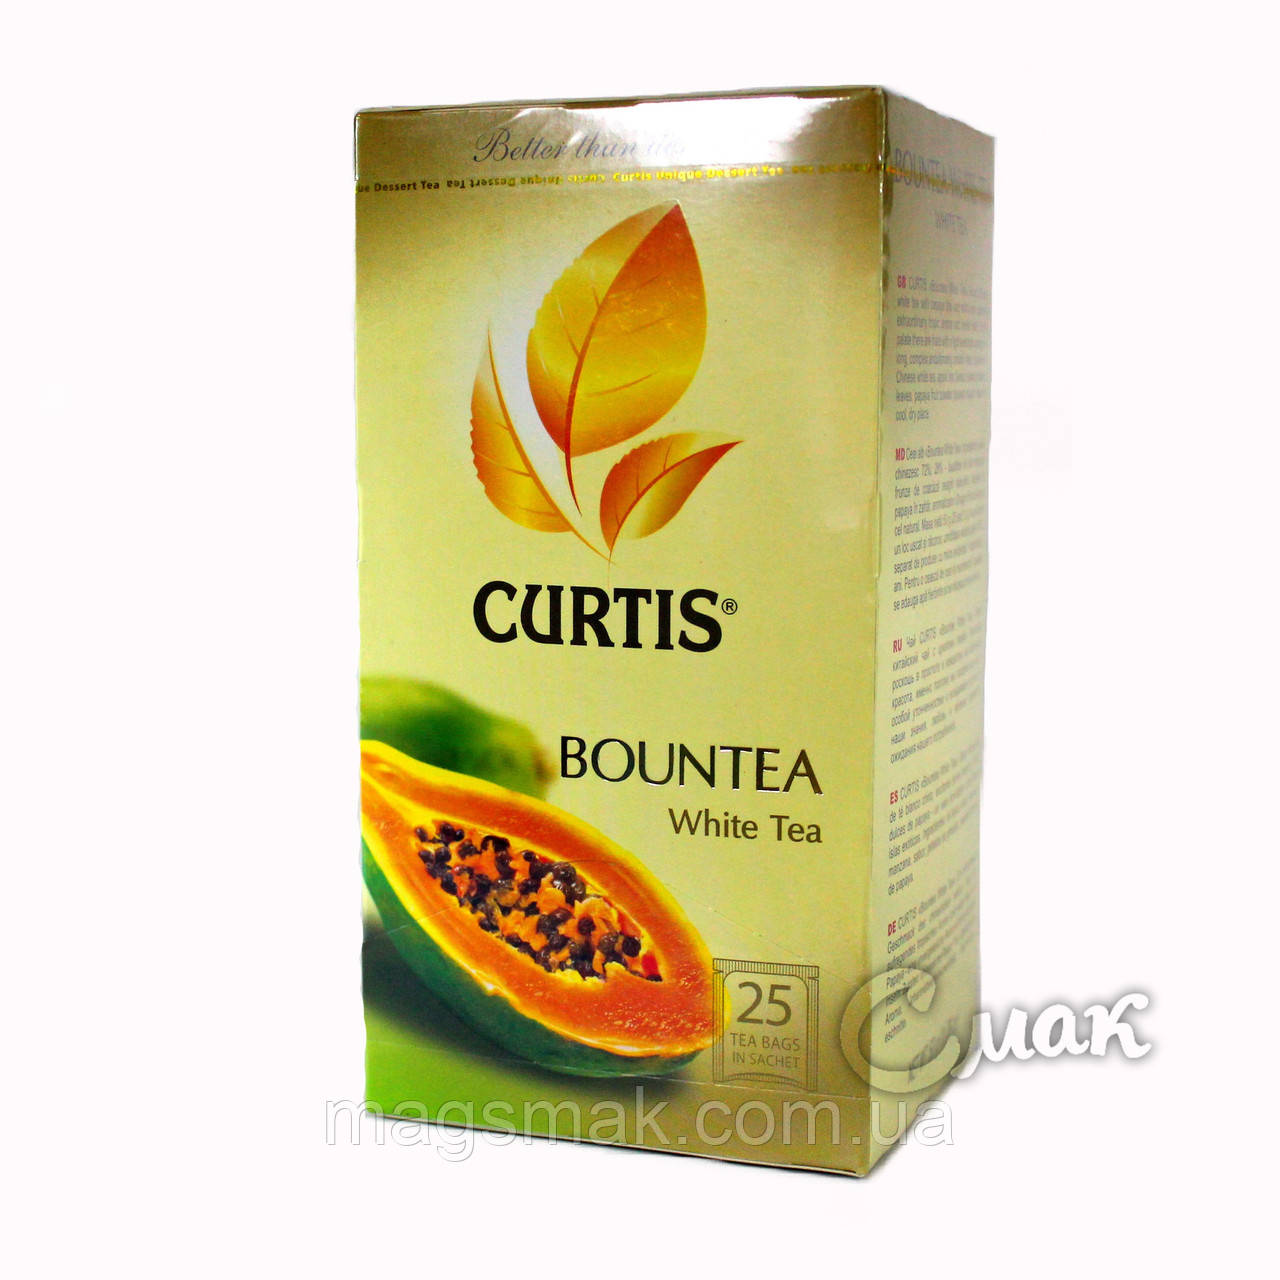 Чай CURTIS Bountea (Баунти), 1,7 Г*25 ПАК. САШЕТ